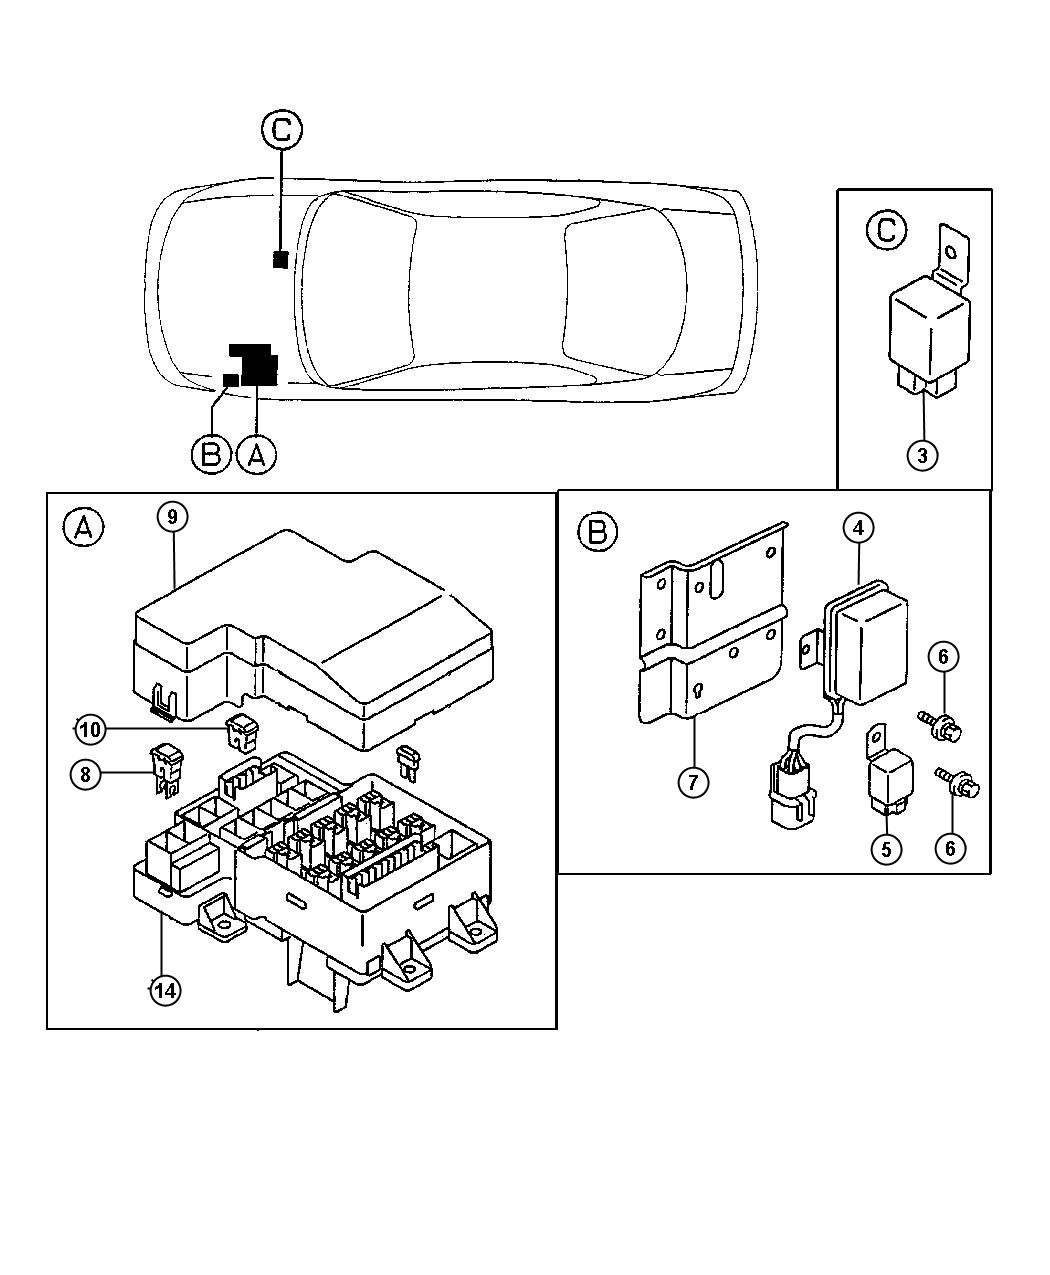 wiring diagram for 1997 chrysler sebring